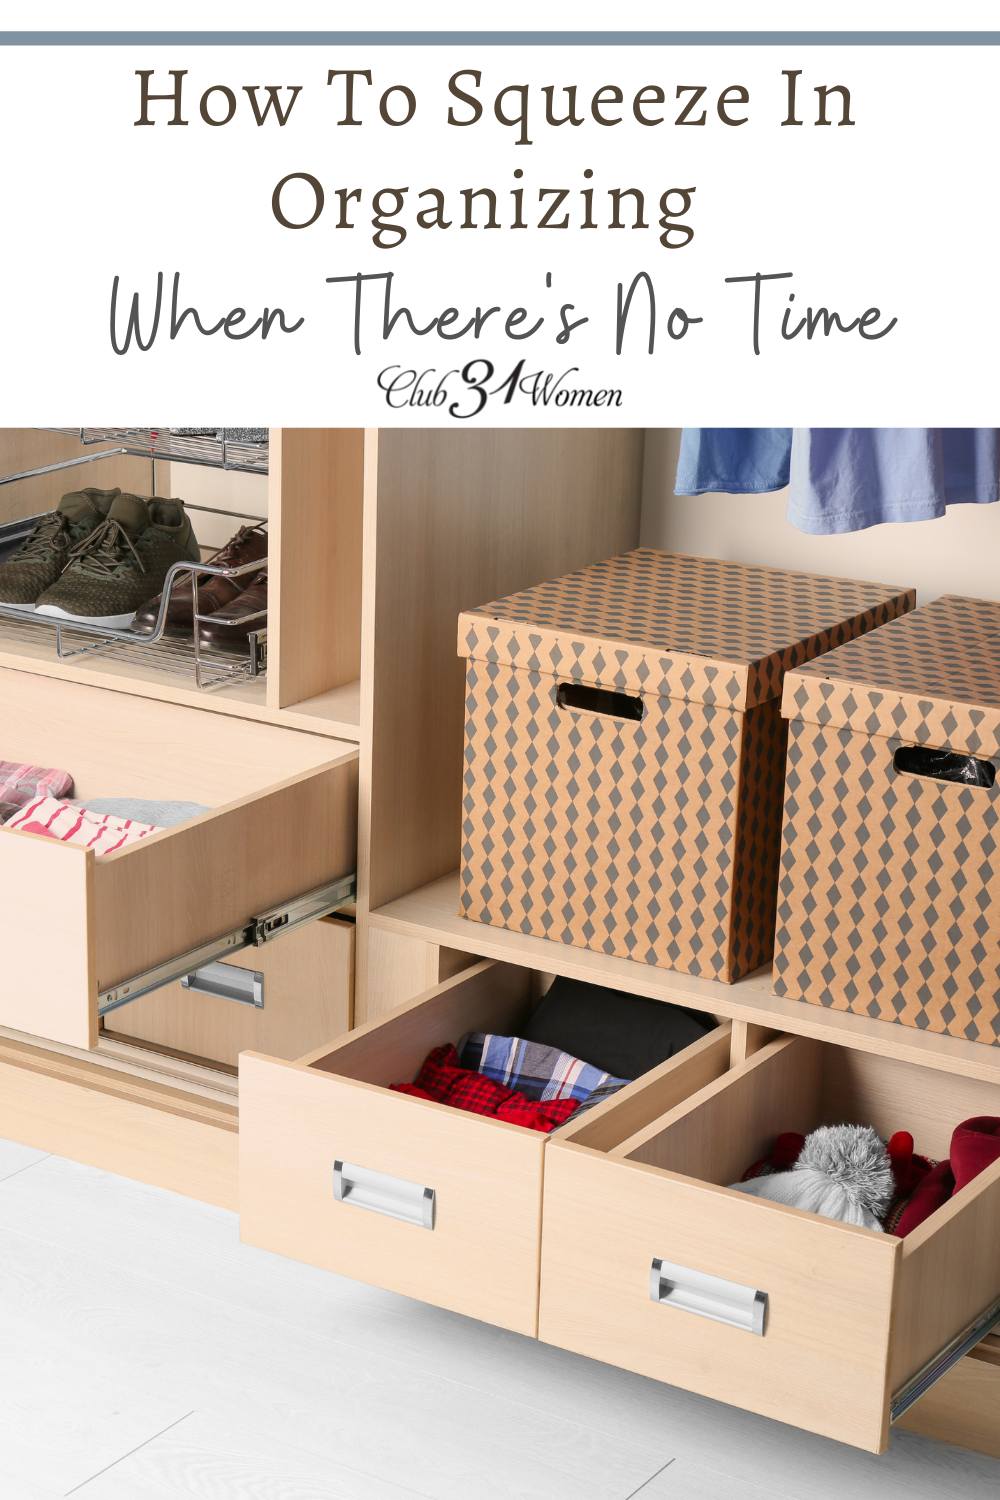 Organizing feels like a huge job--especially when you don't have a lot of time. Here are some ideas to help you make time. via @Club31Women